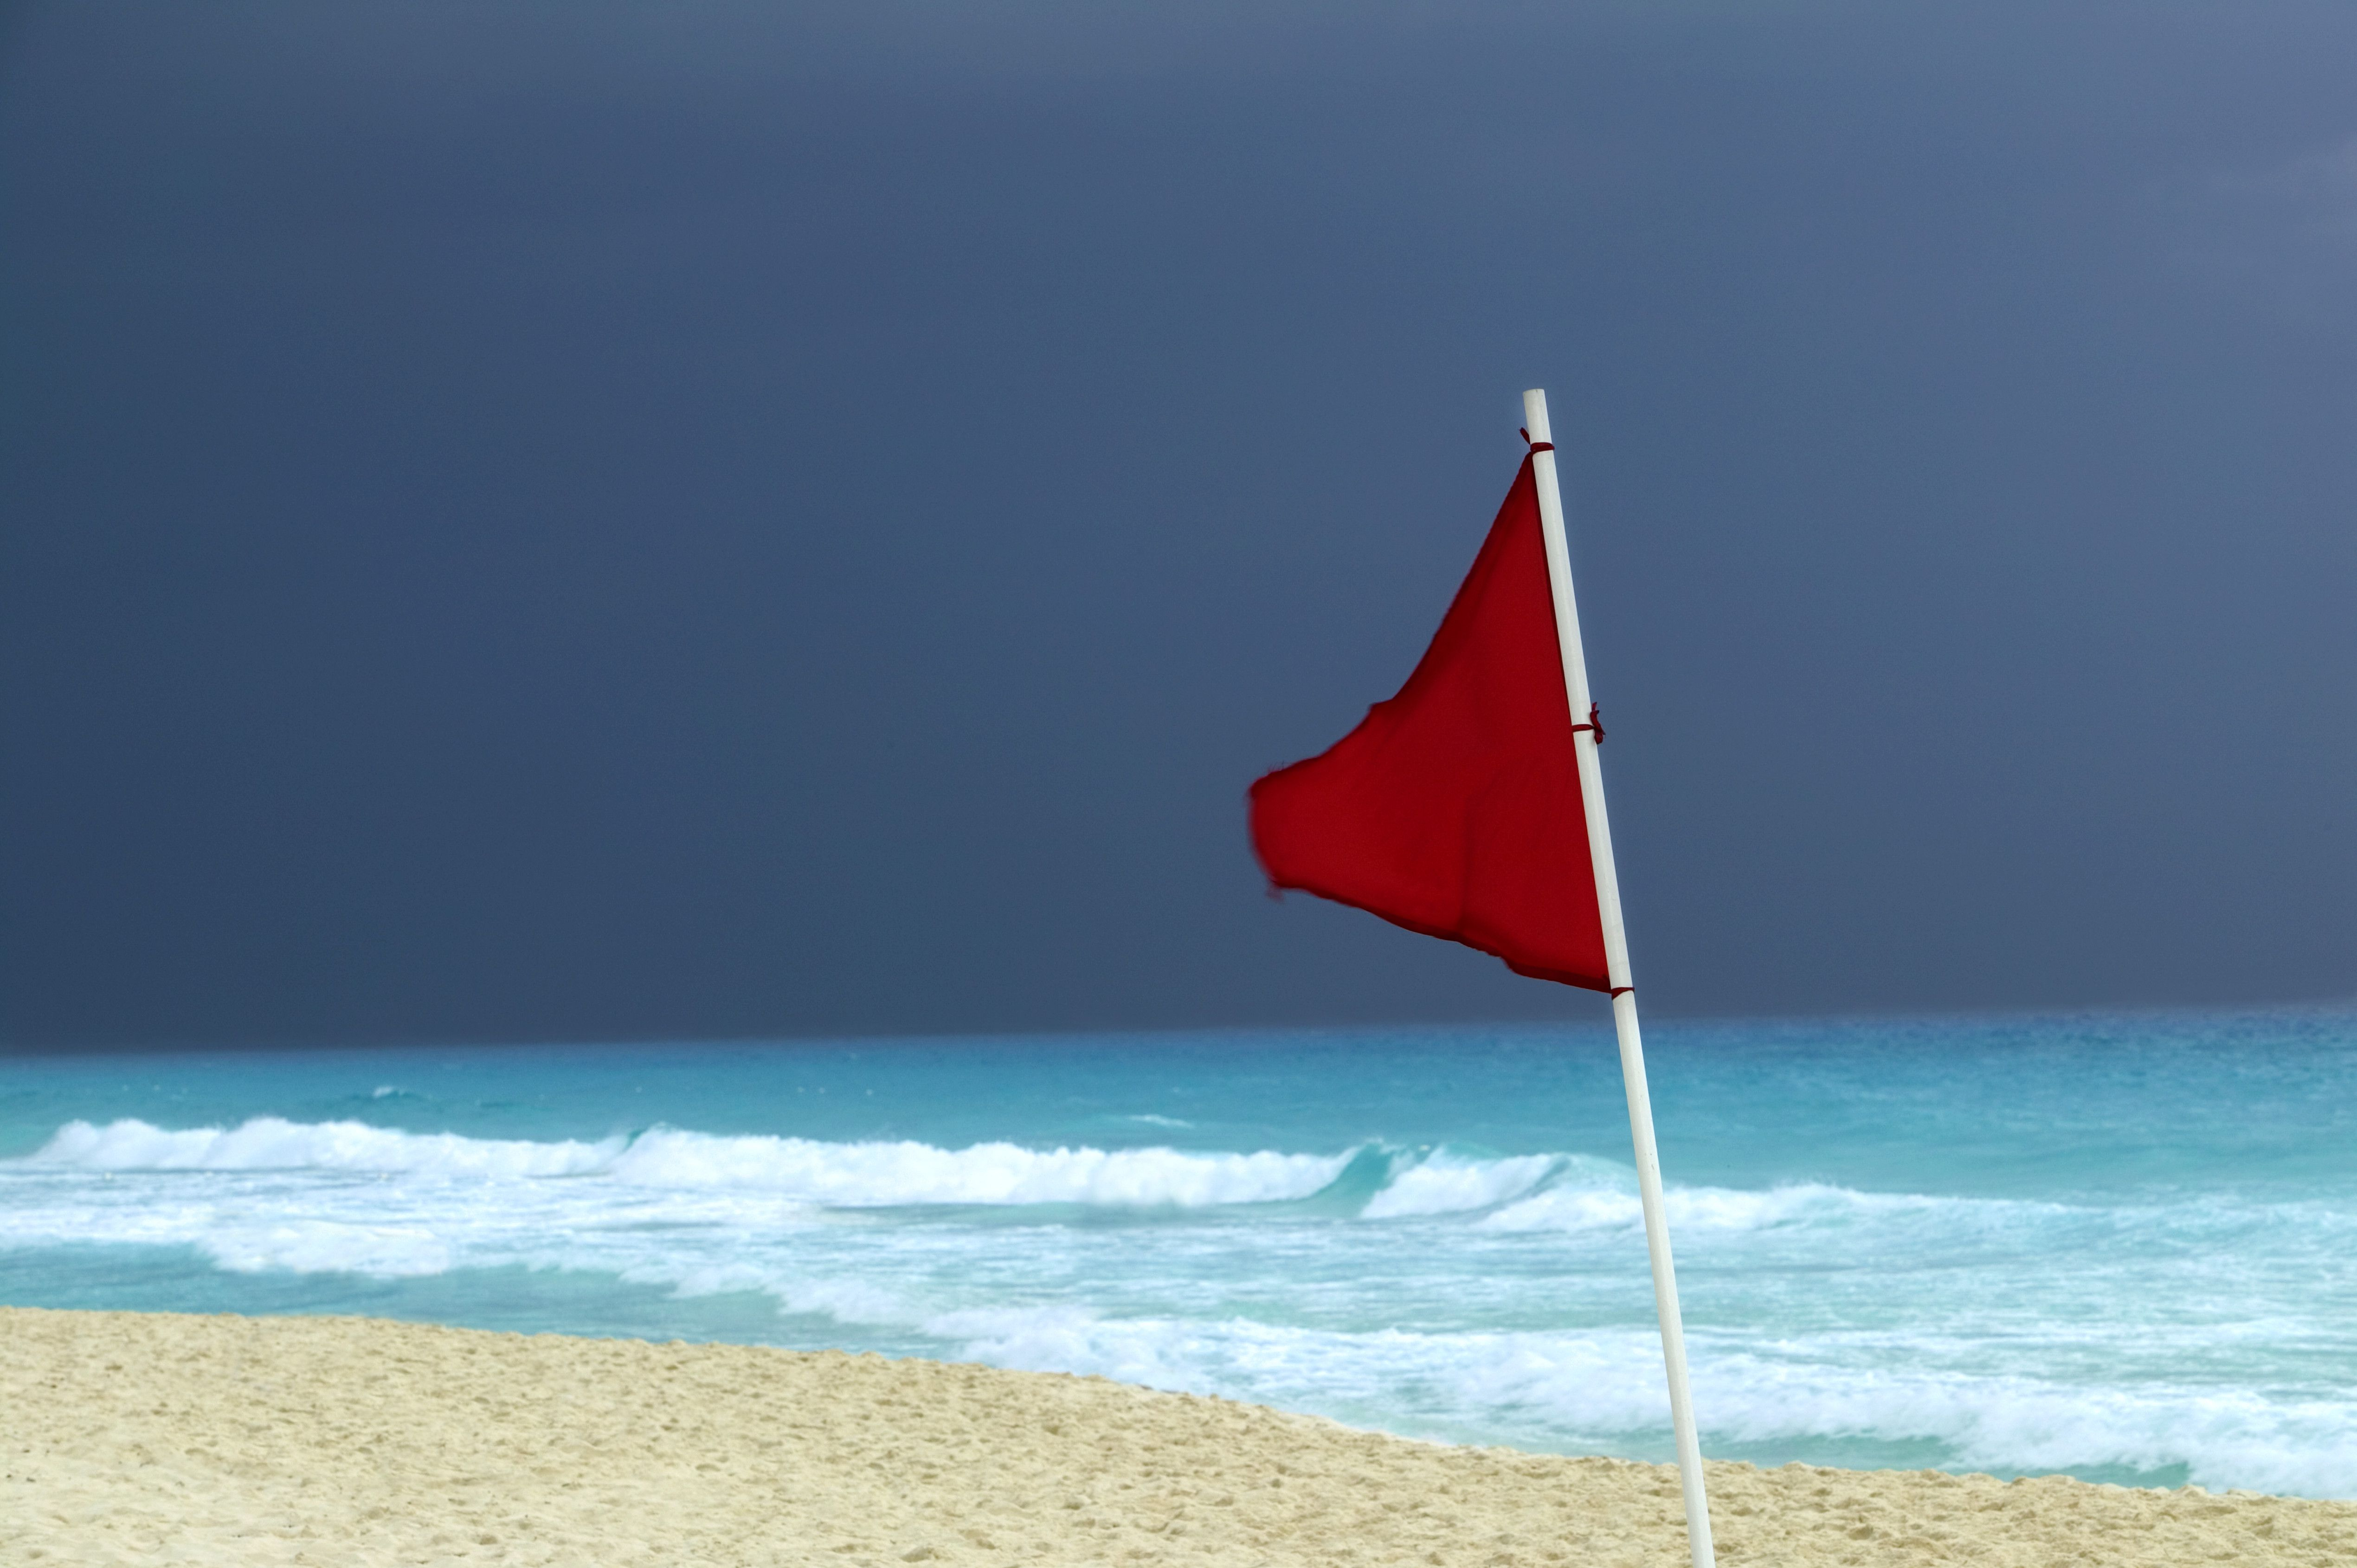 South florida beach flag warning system stay safe on mexicos beaches learn what the warning flags mean buycottarizona